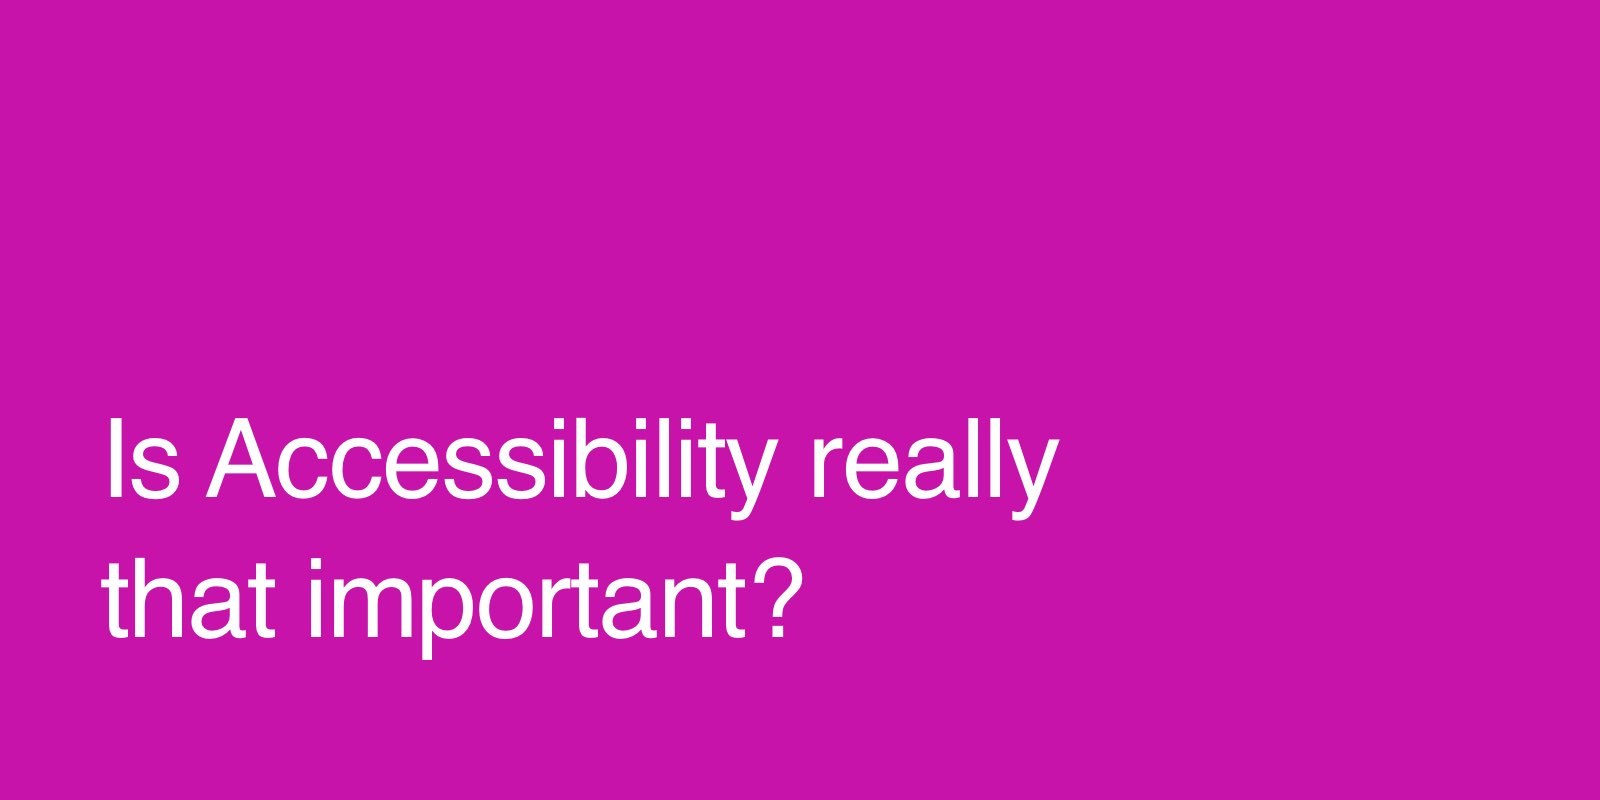 Is accessibility really that important?